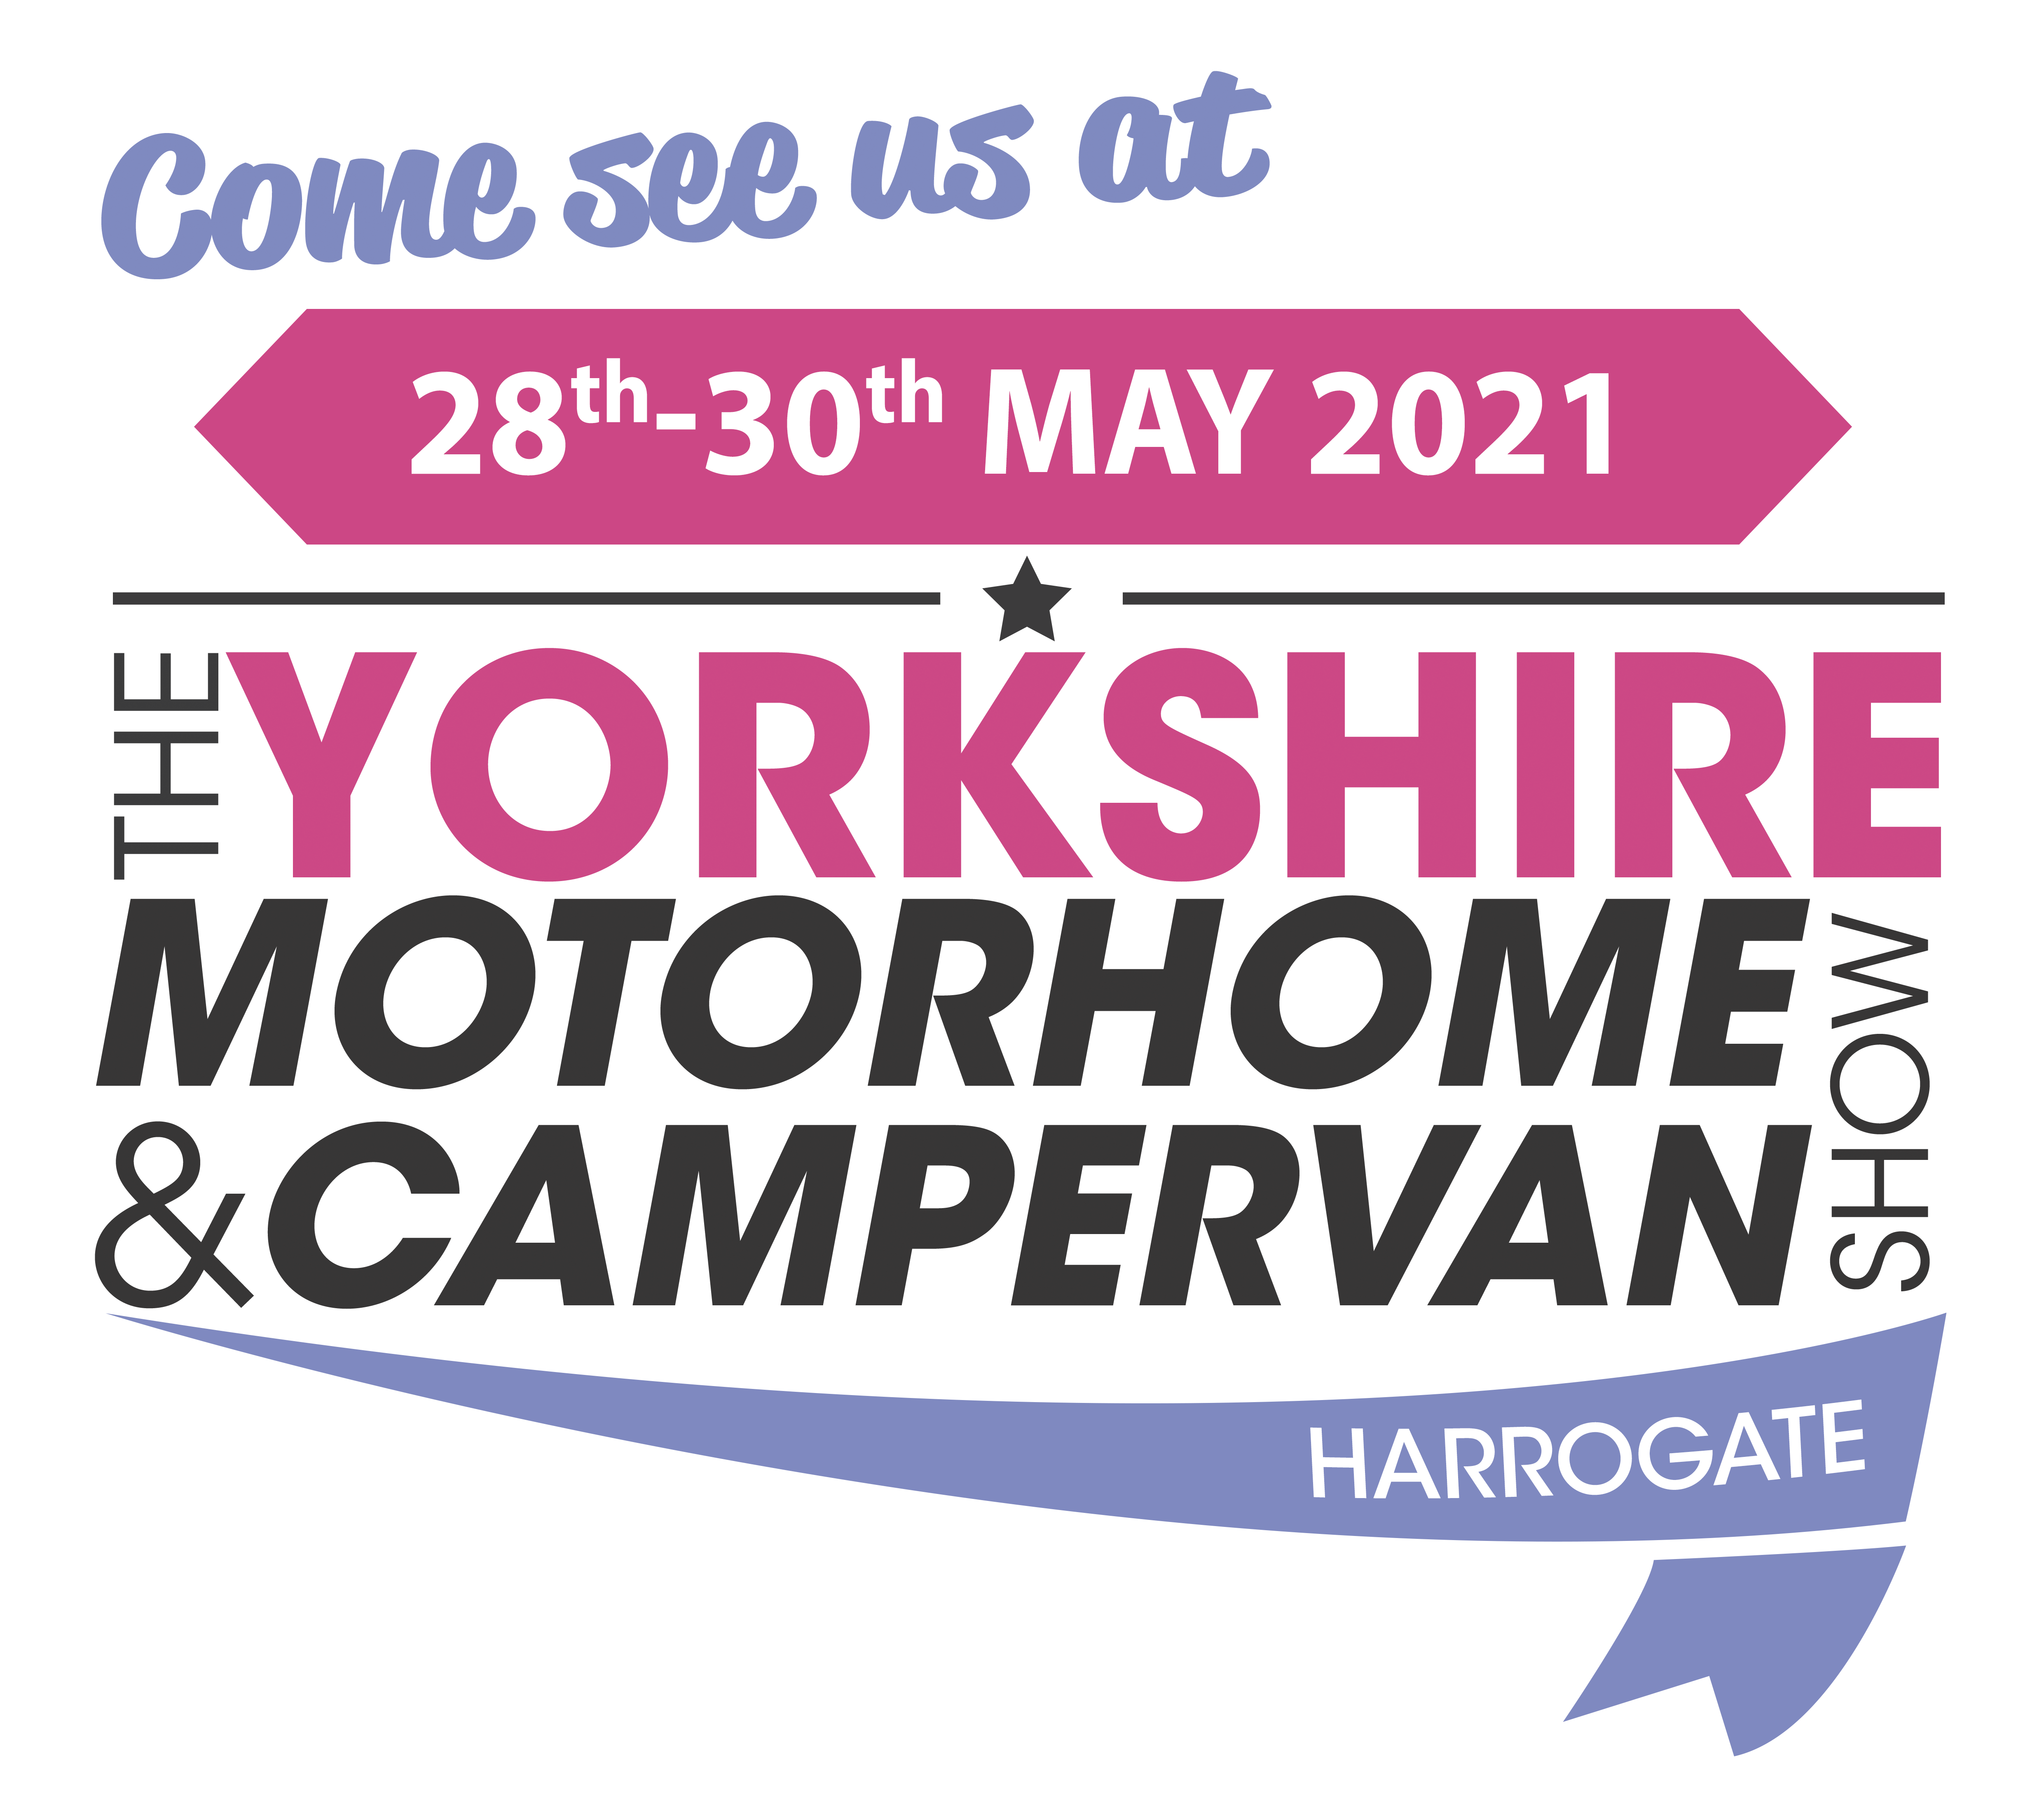 harrogate-2021-come-see-us-at.png